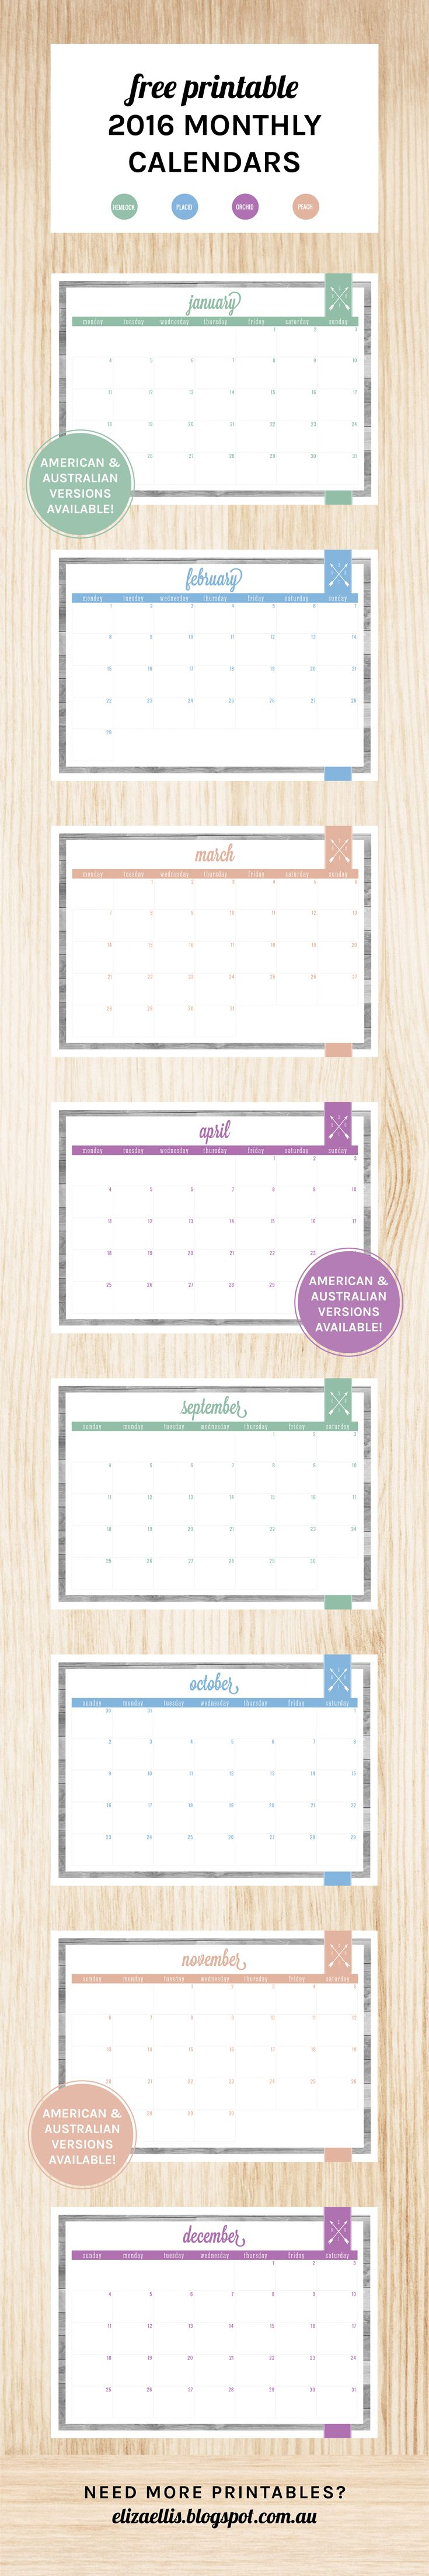 Free Printable 2016 Home Organizer Calendars & Covers by Eliza Ellis - Updating my immensely popular planners for 2016 including Home Organizer Covers, Year to a Page Calendars, Month to a Page Calendars, Week to a Page Diary and Day to a Page Diary. Available in both American and Australian/UK versions.